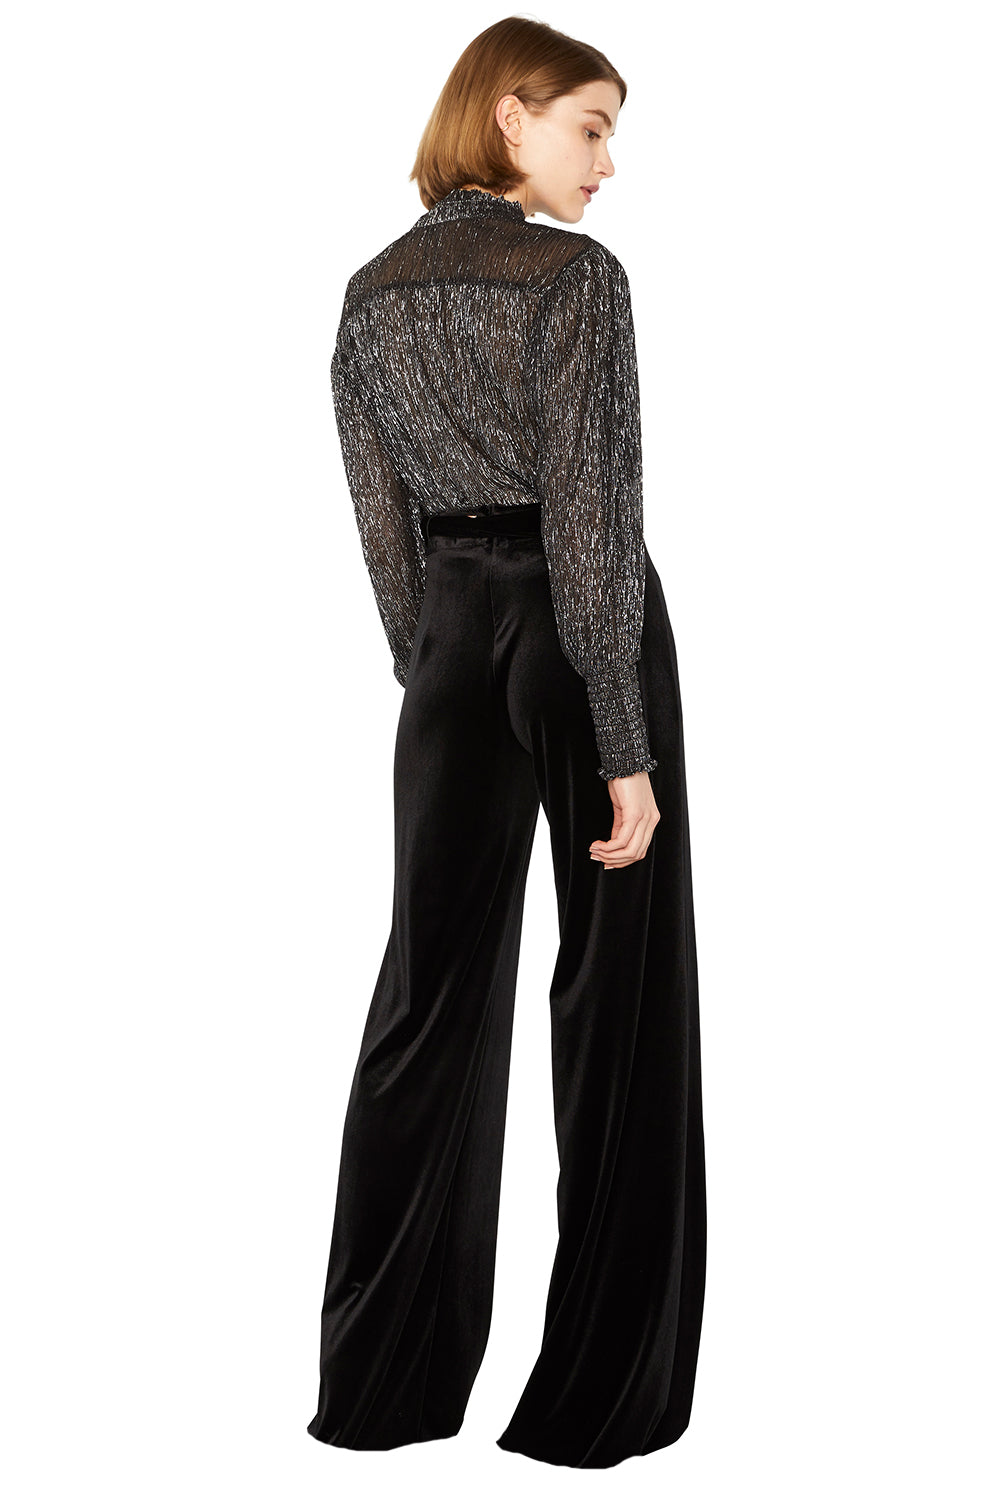 ALIYA VELVET PANTS - MISA Los Angeles